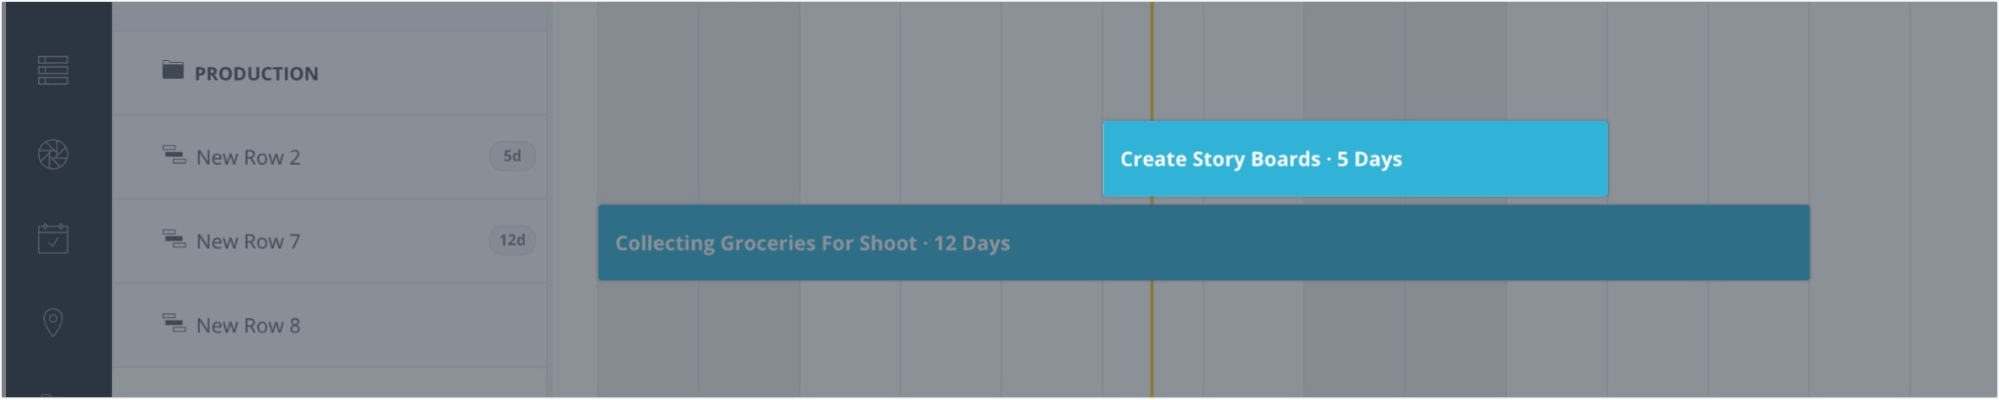 Production Management Software - Create Storyboard Event Block - StudioBinder